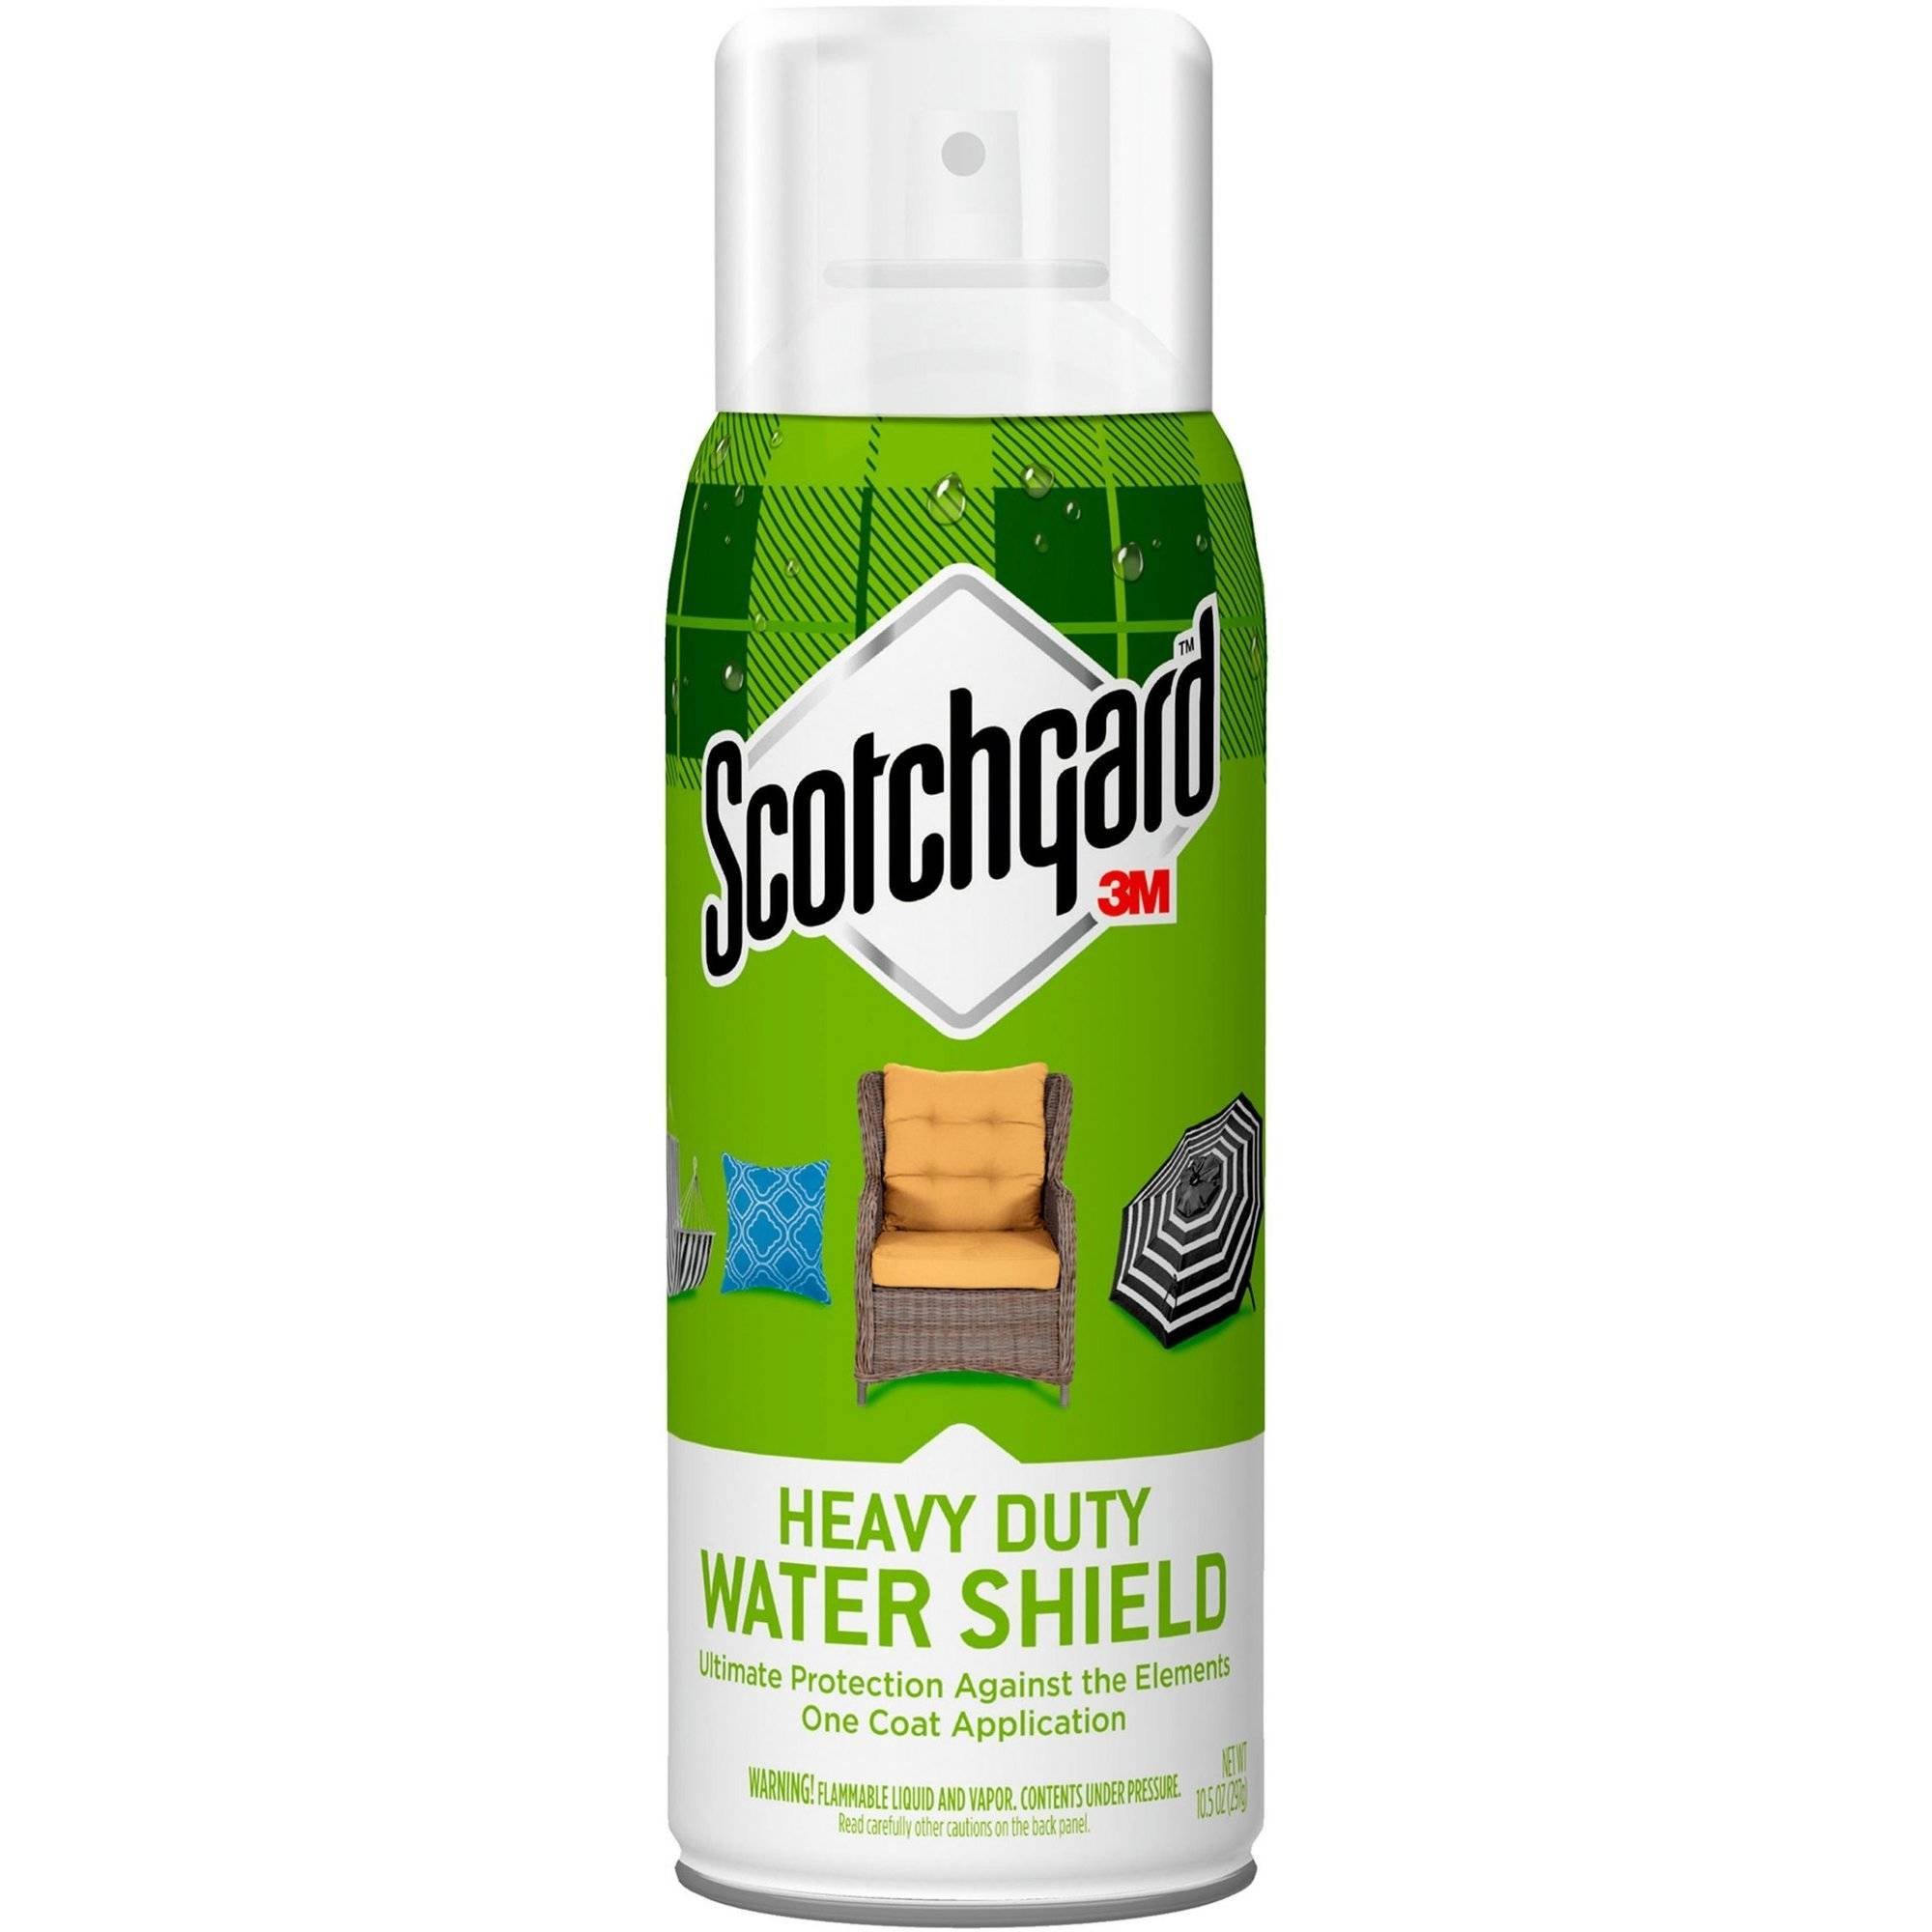 Scotchgard Heavy Duty Water Shield, 10.5 oz., 1 Can